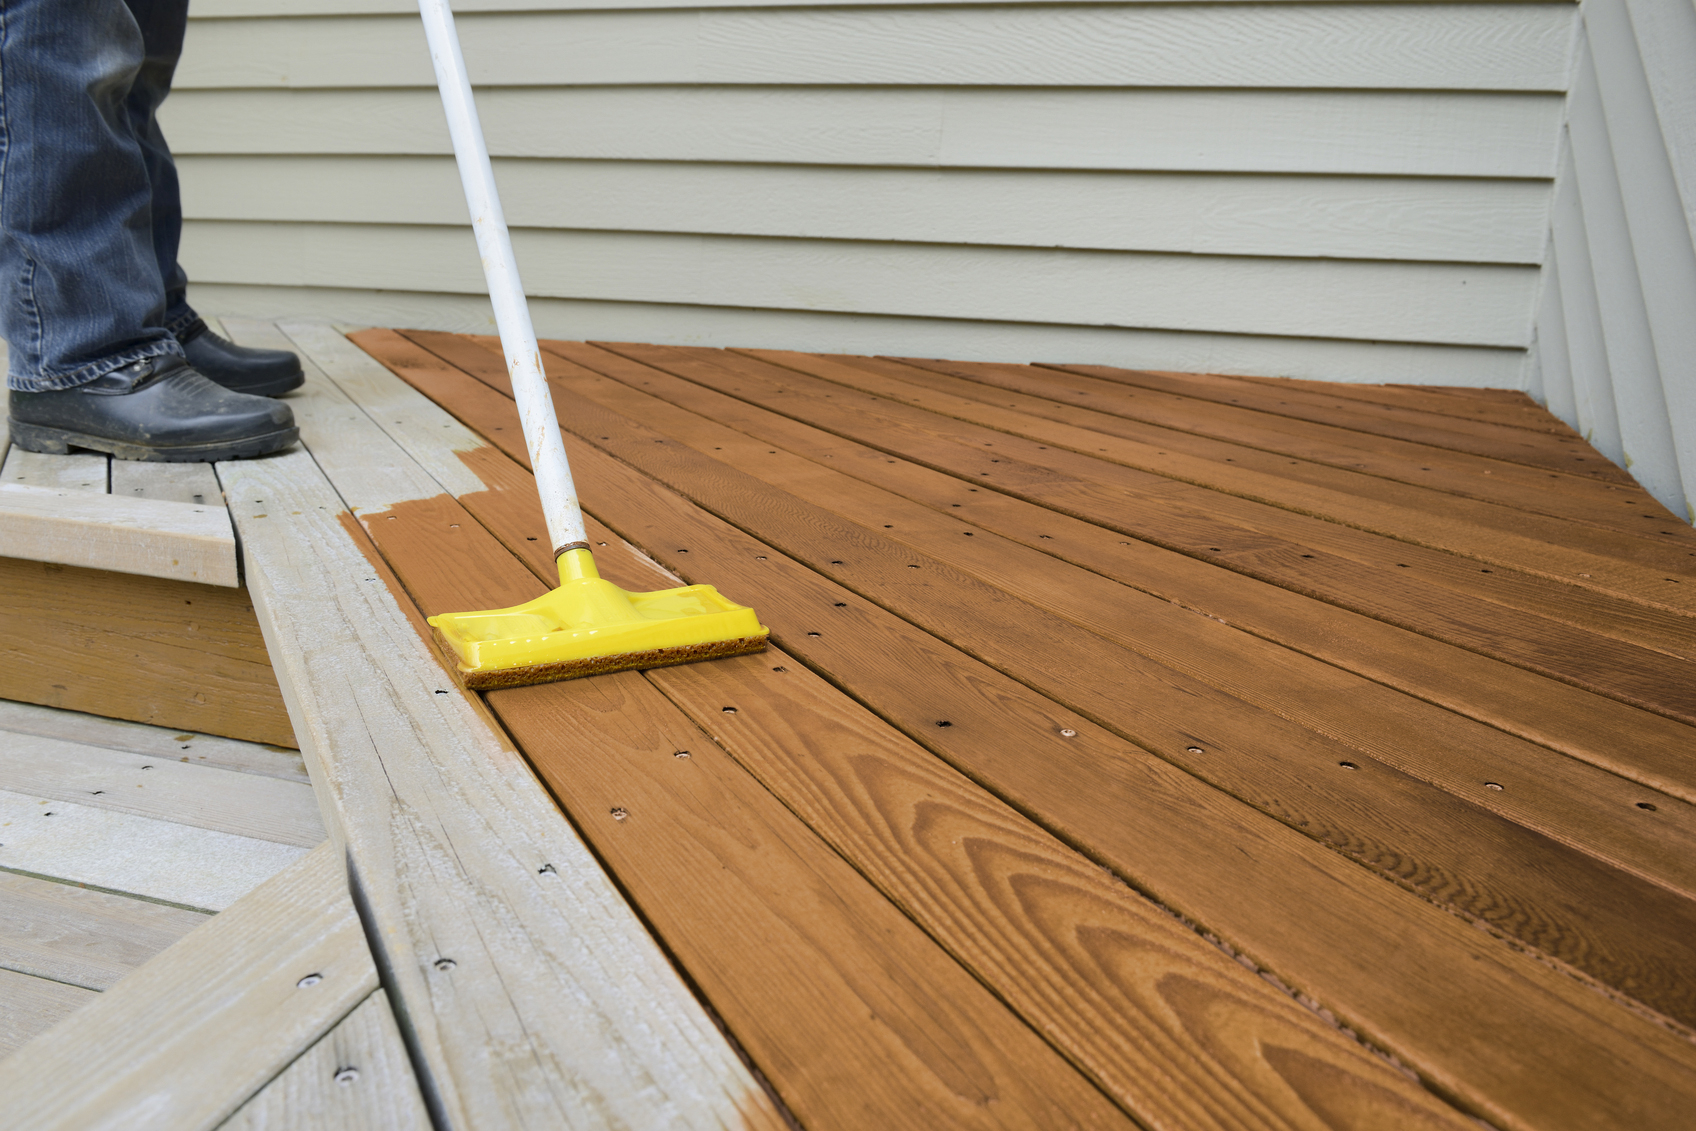 10 Best Rated Deck Stains Lovetoknow within dimensions 1696 X 1131